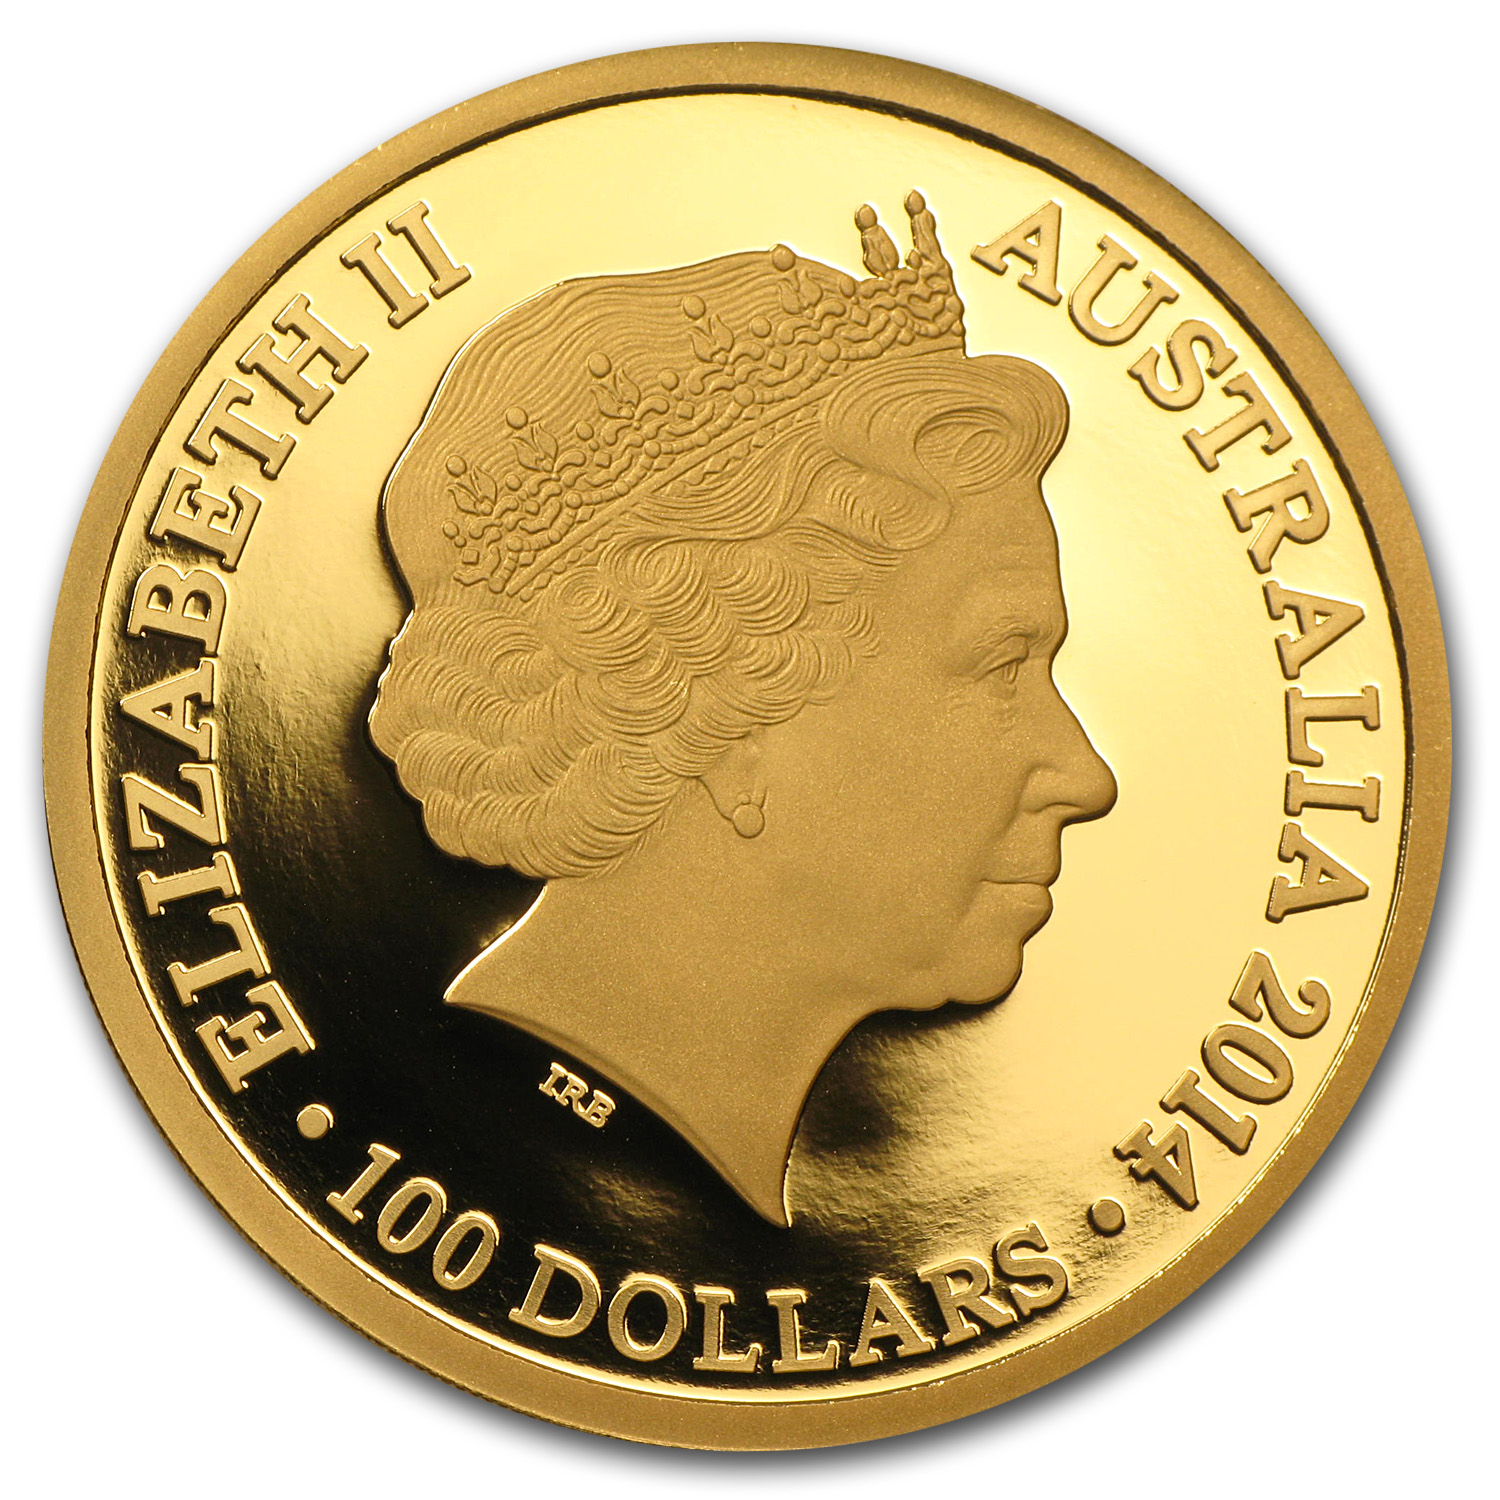 Royal Australian Mint 2014 1 oz Proof Gold Year of the Horse